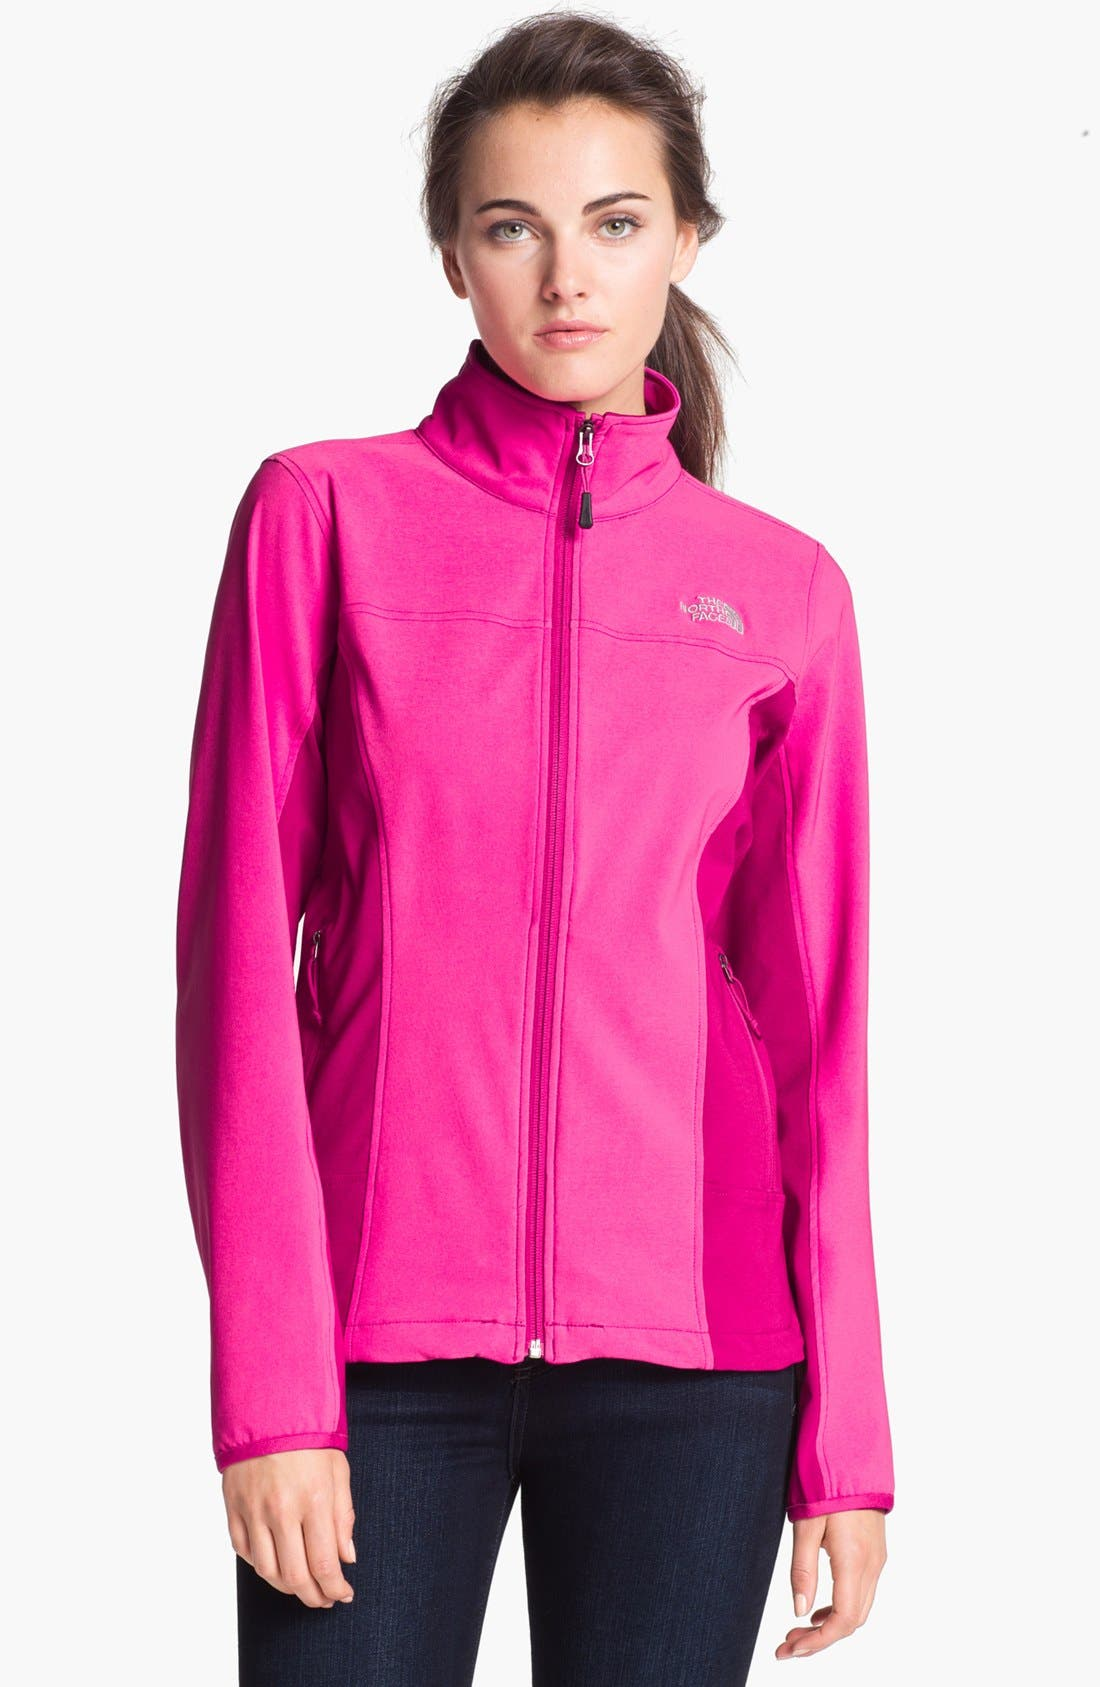 Alternate Image 1 Selected - The North Face 'Nimble' Soft Shell Jacket